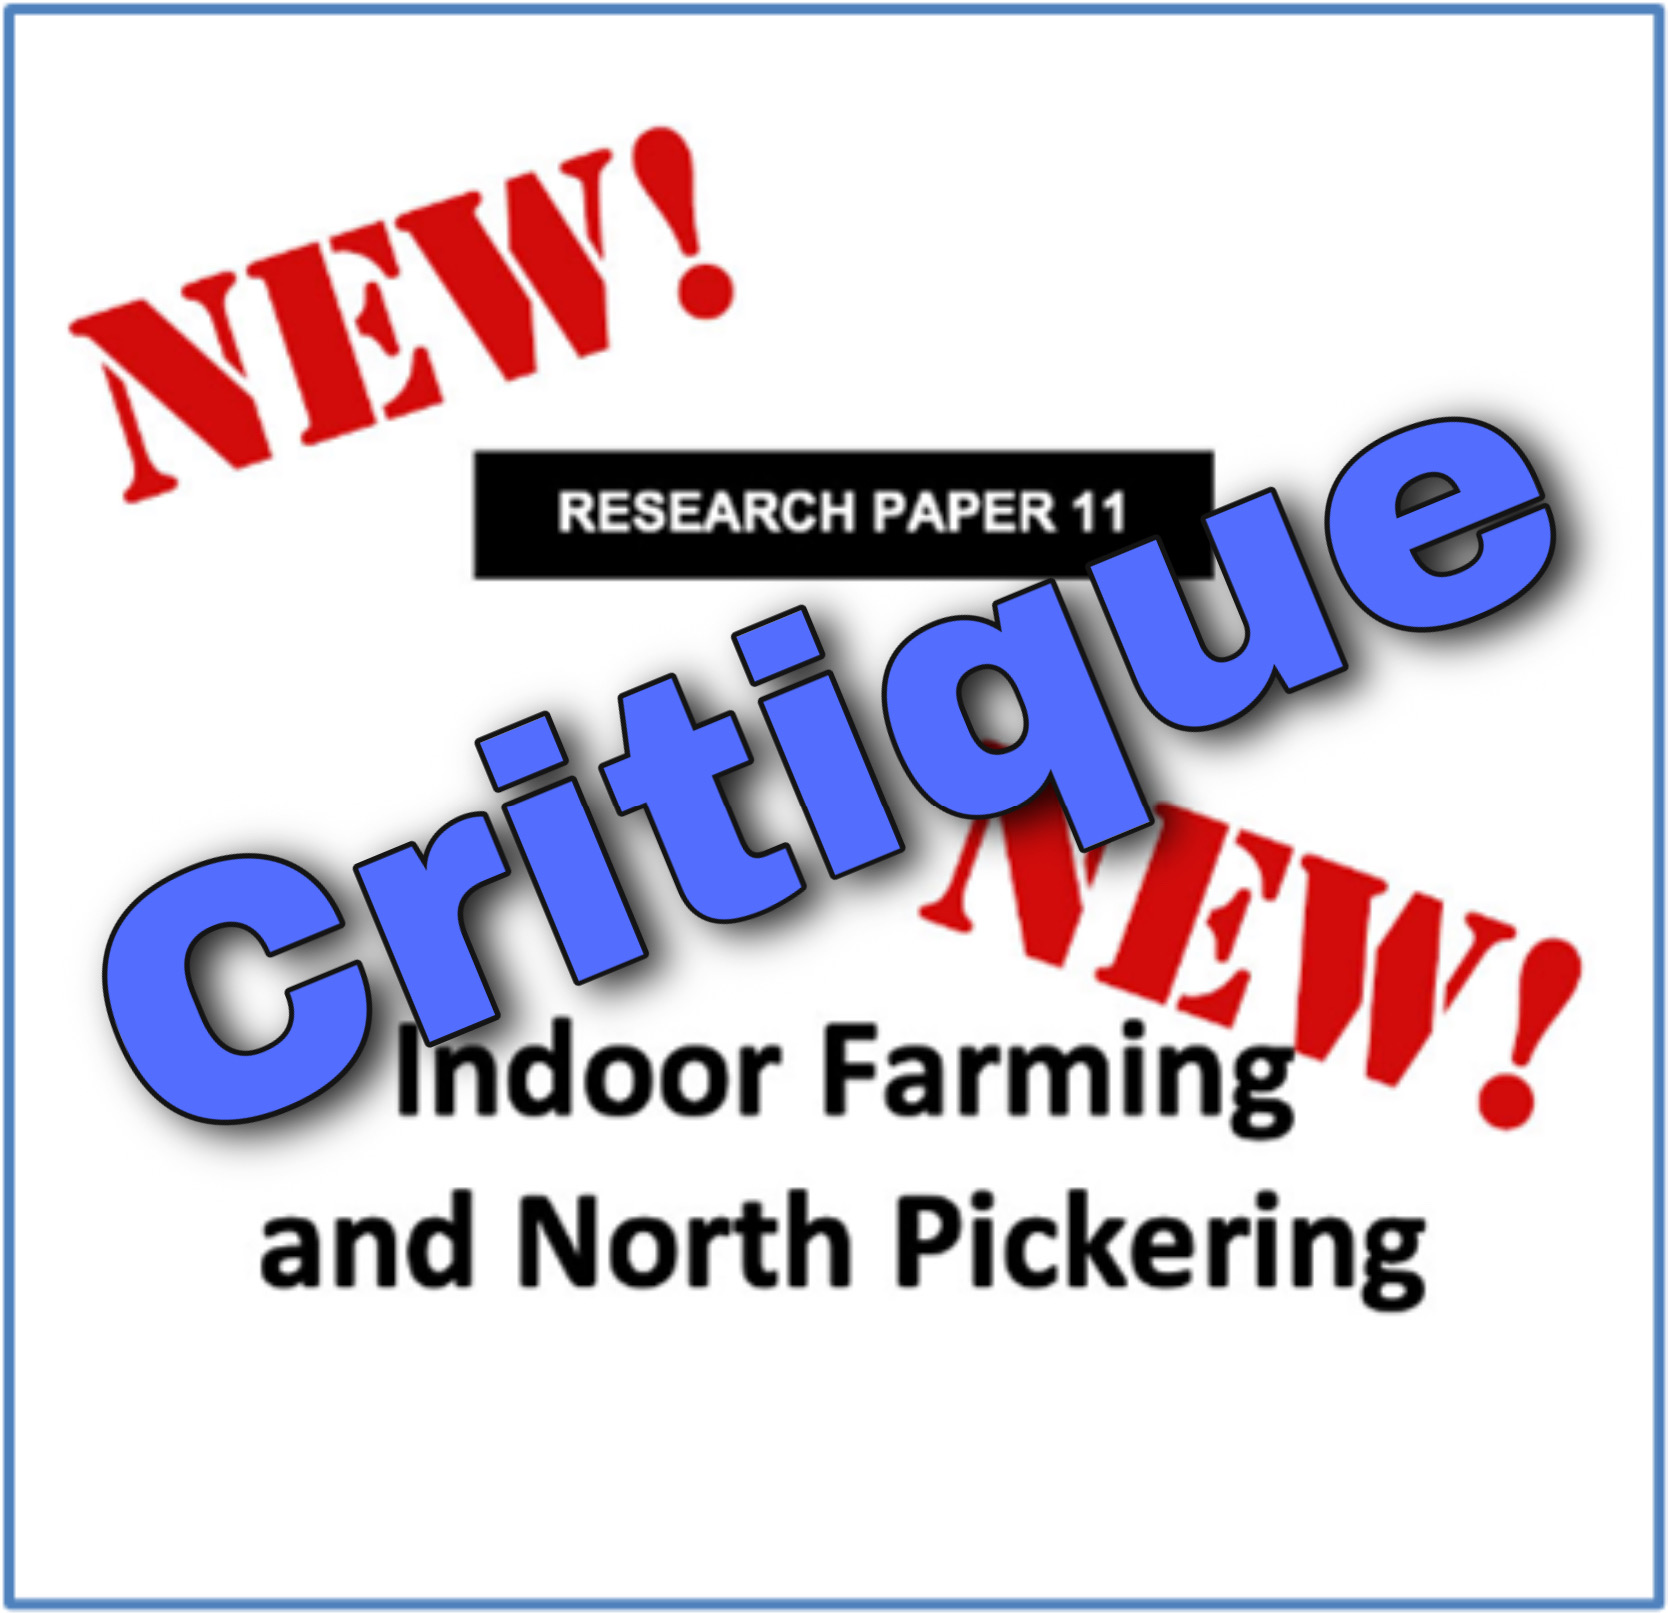 Critique of the Land Over Landings Research Paper 11 – Indoor Farming and North Pickering